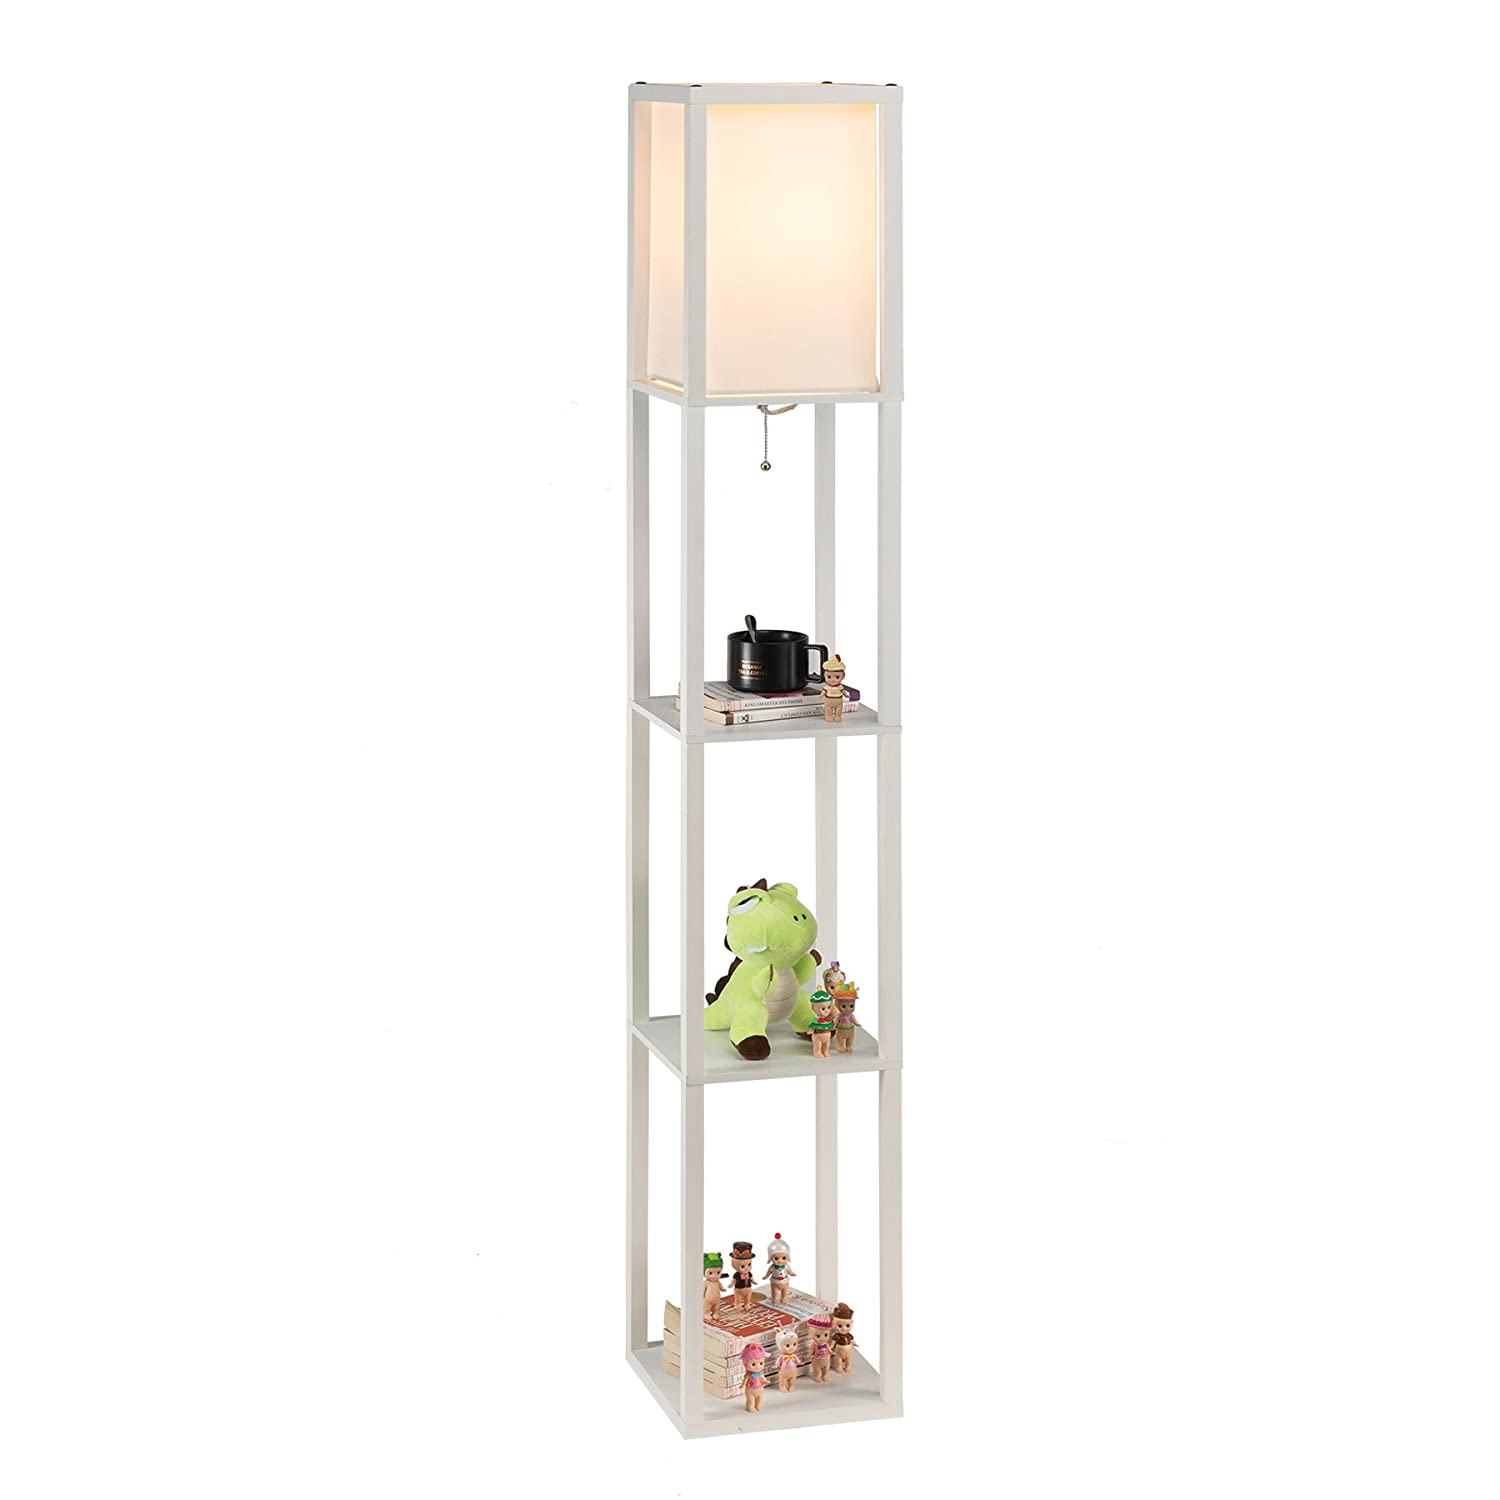 Floor Lamp, Etagere Lamp With Shelves, Standing Lamp With 3